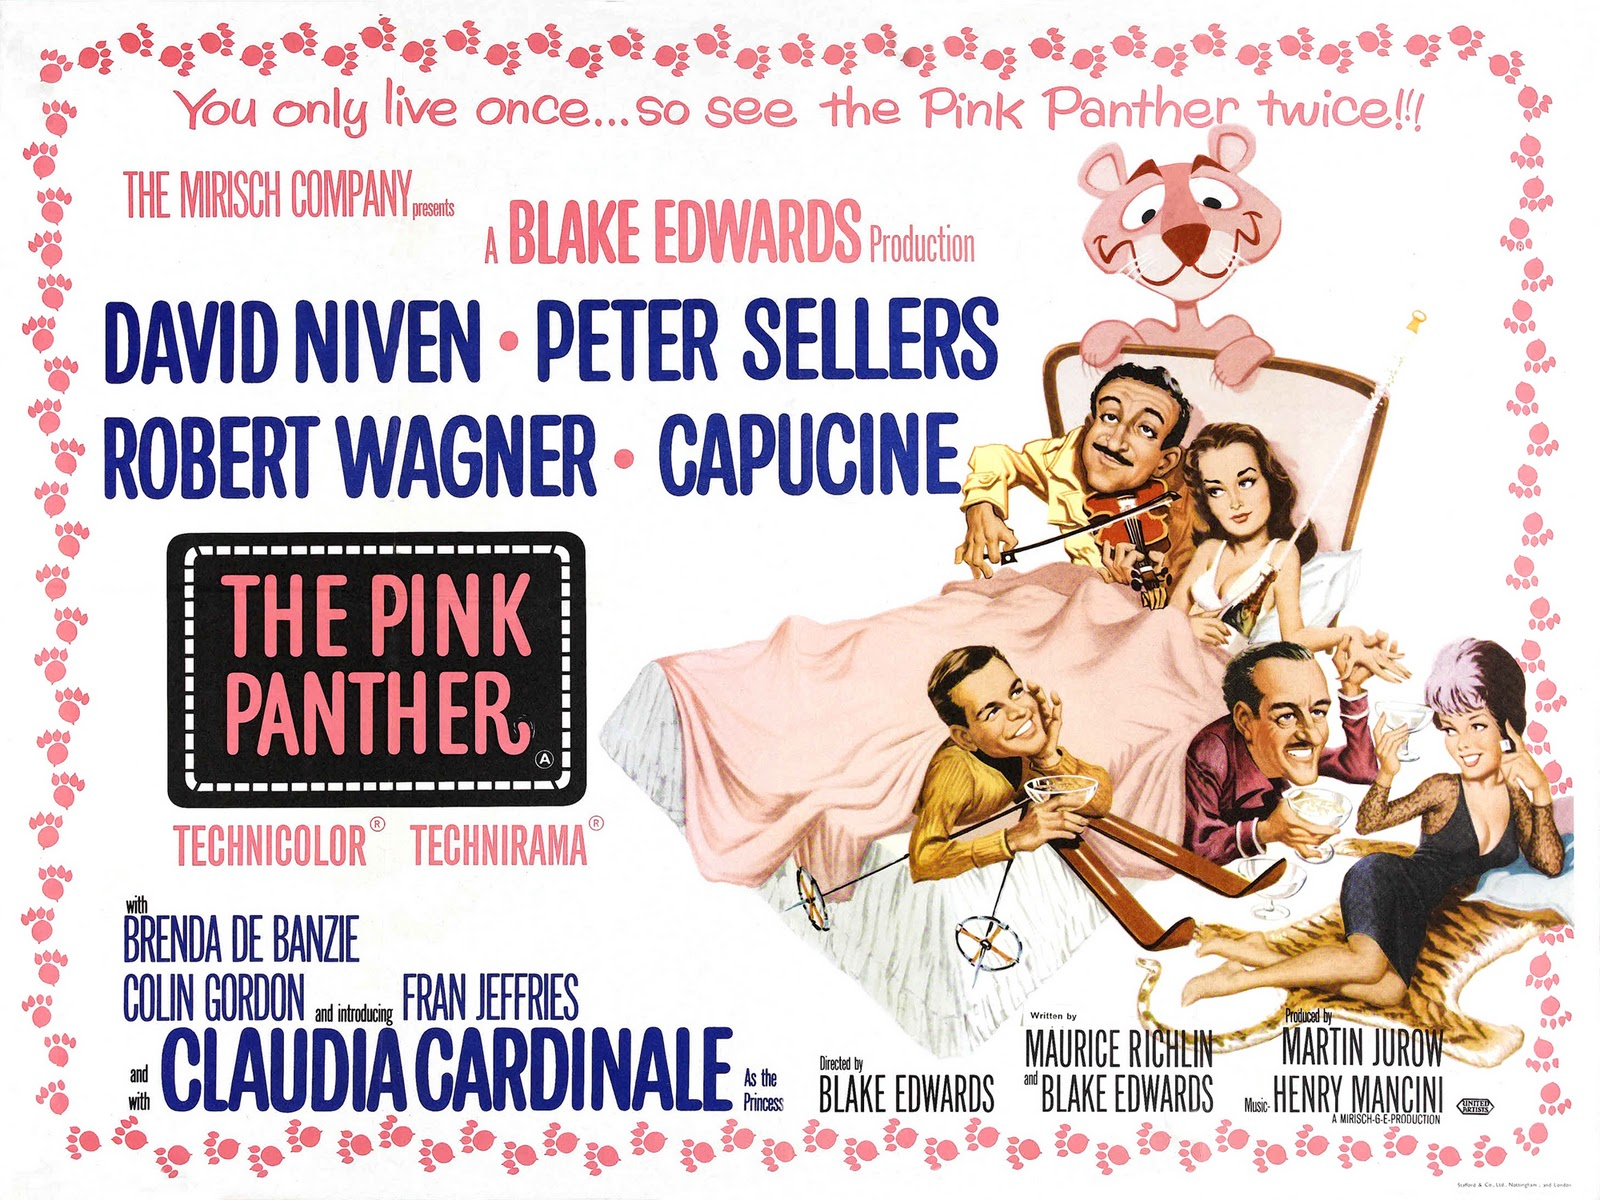 The Pink Panther Film Collection The Pink Panther A Shot In the Dark Strikes Again Revenge Of Trail Of the Pink Panther Movie HD free download 720p